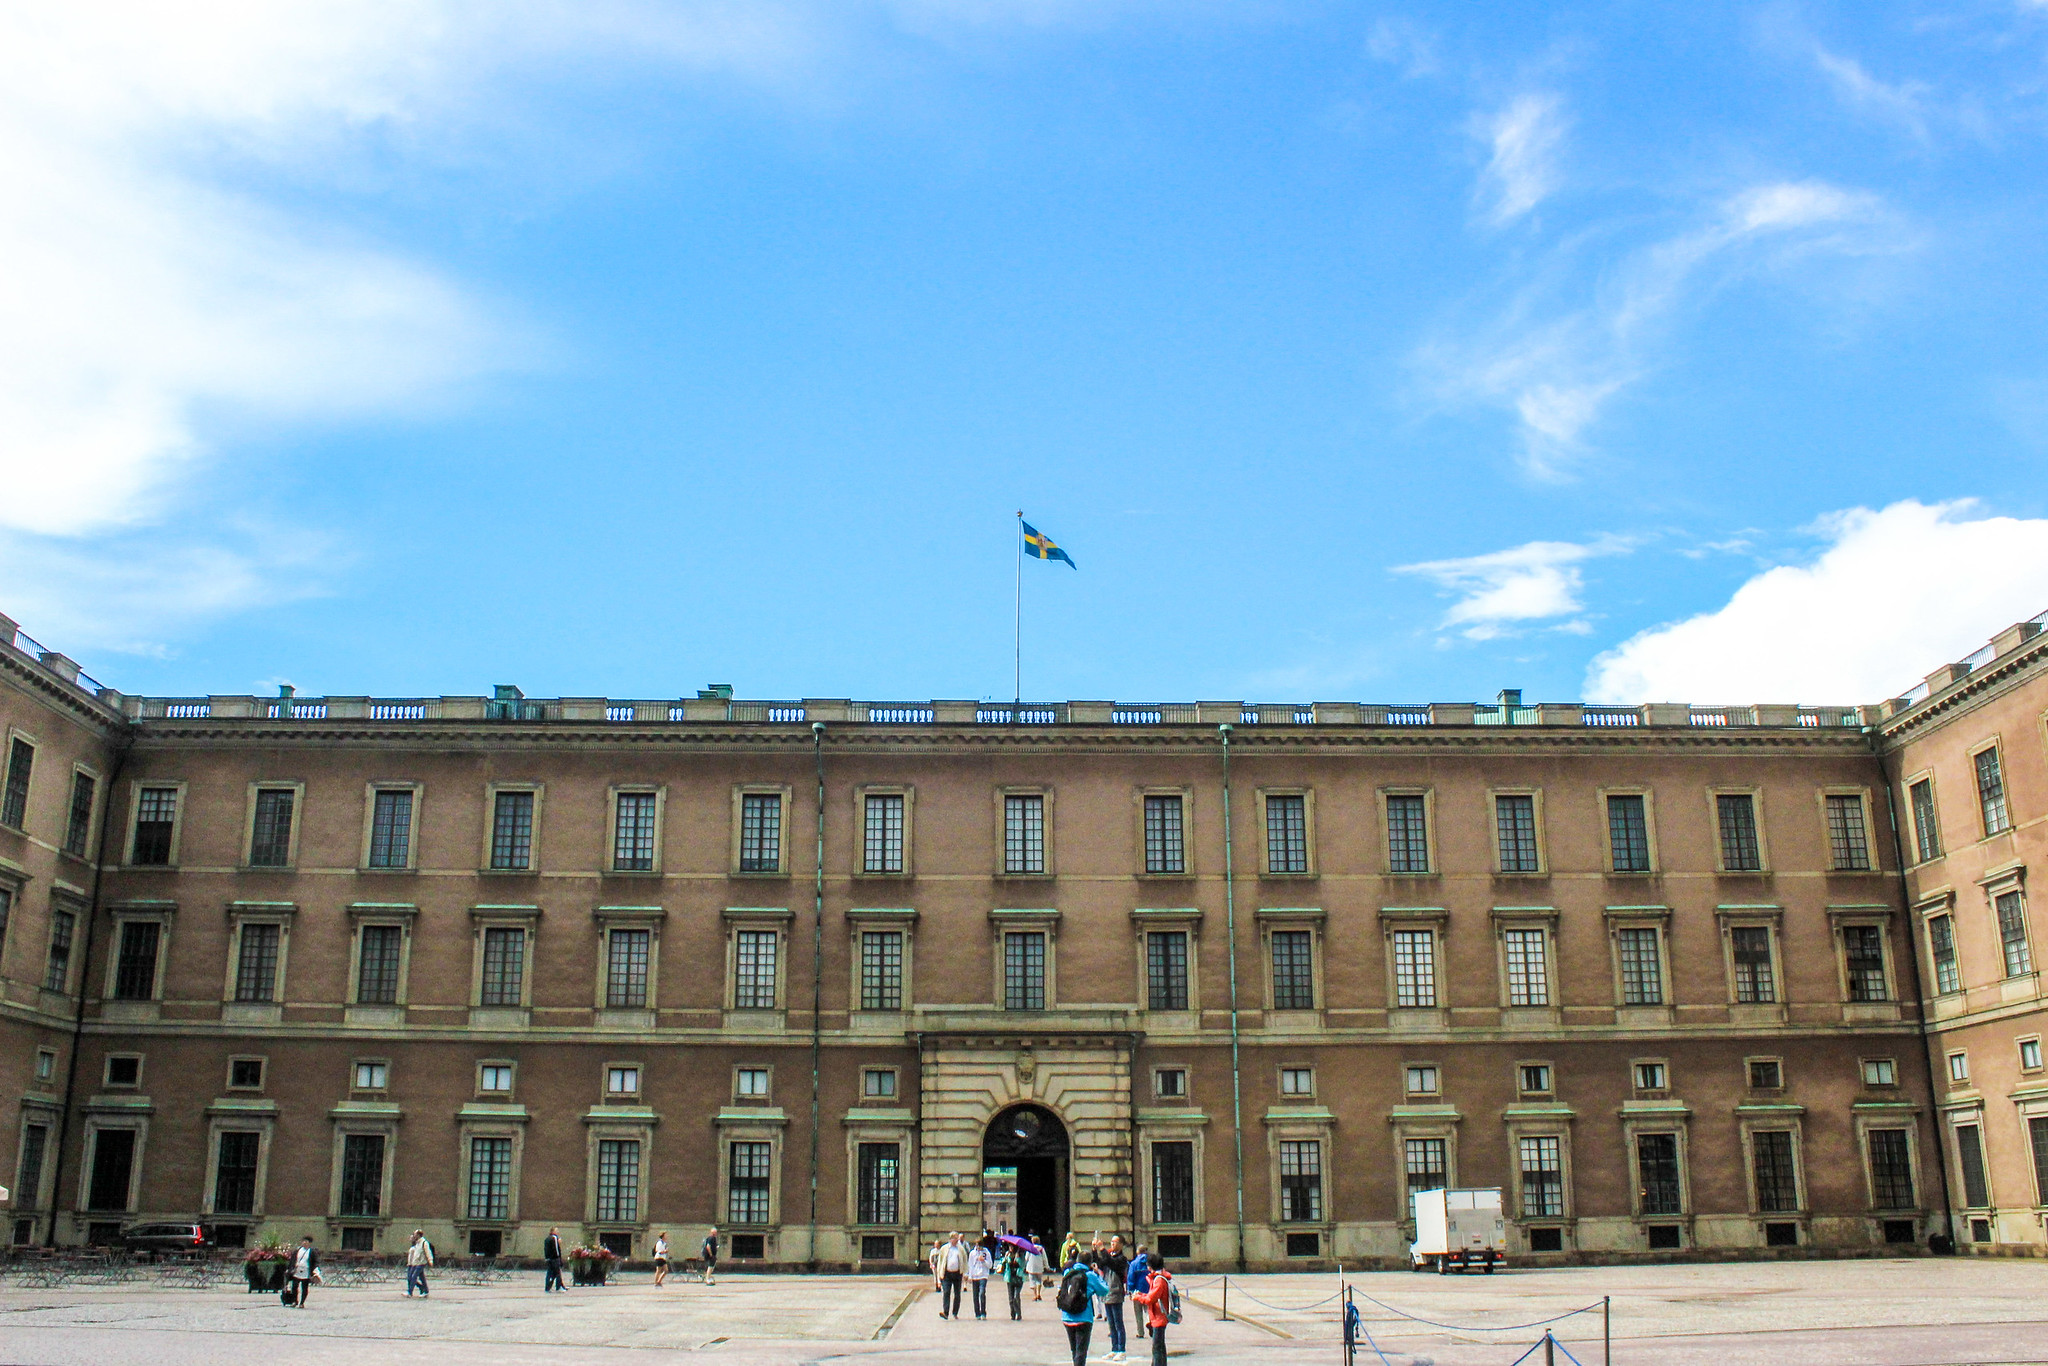 stockholm 1 day item: go see the royal palace